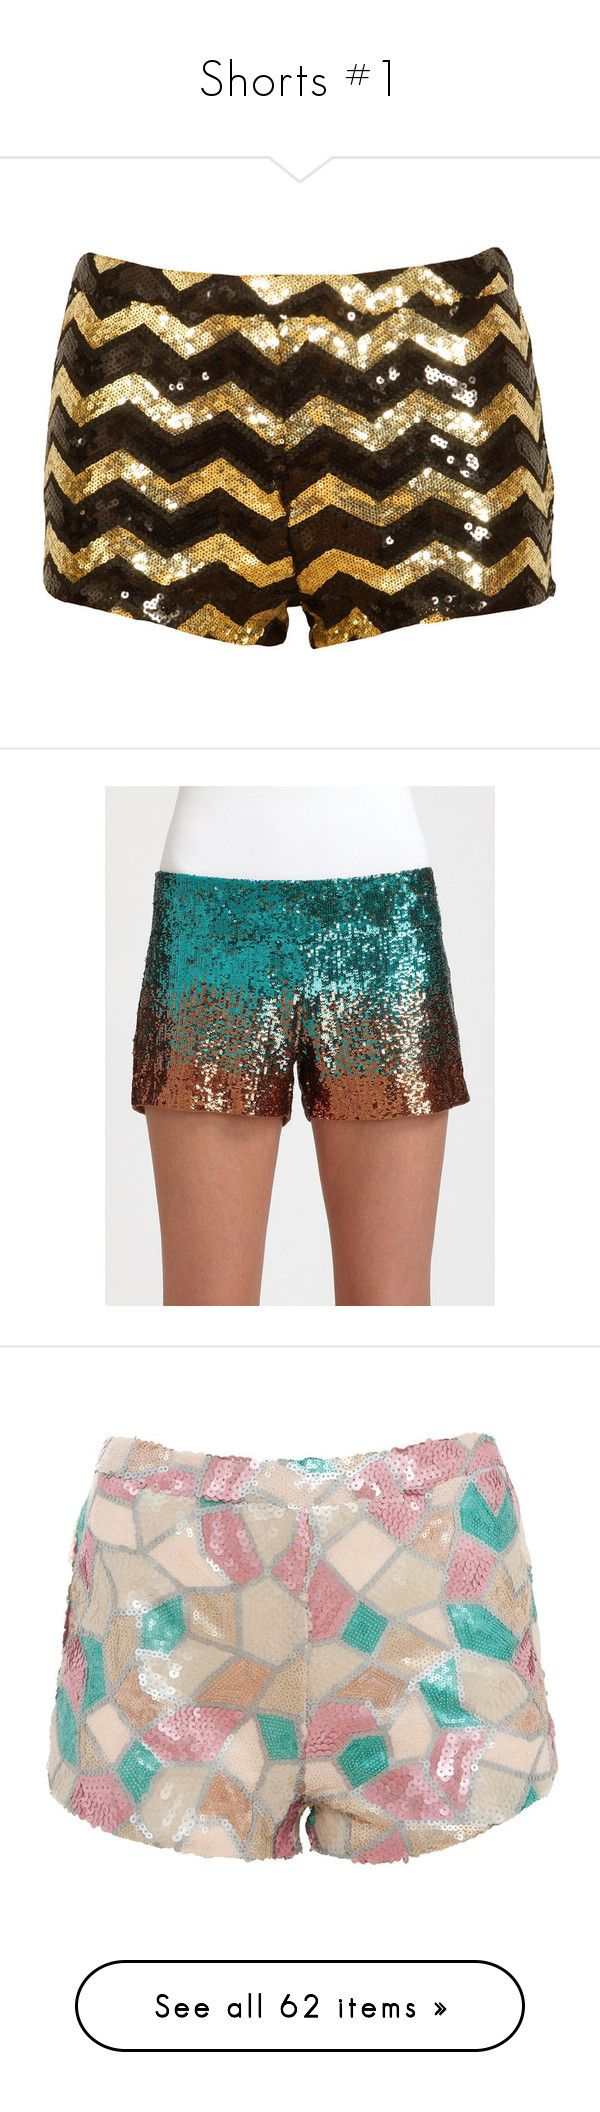 """""""Shorts #1"""" by lululafitte ❤ liked on Polyvore featuring shorts, bottoms, pants, short, mini short shorts, sequin hot pants, black and gold sequin shorts, hot shorts, micro short shorts and side zip shorts"""